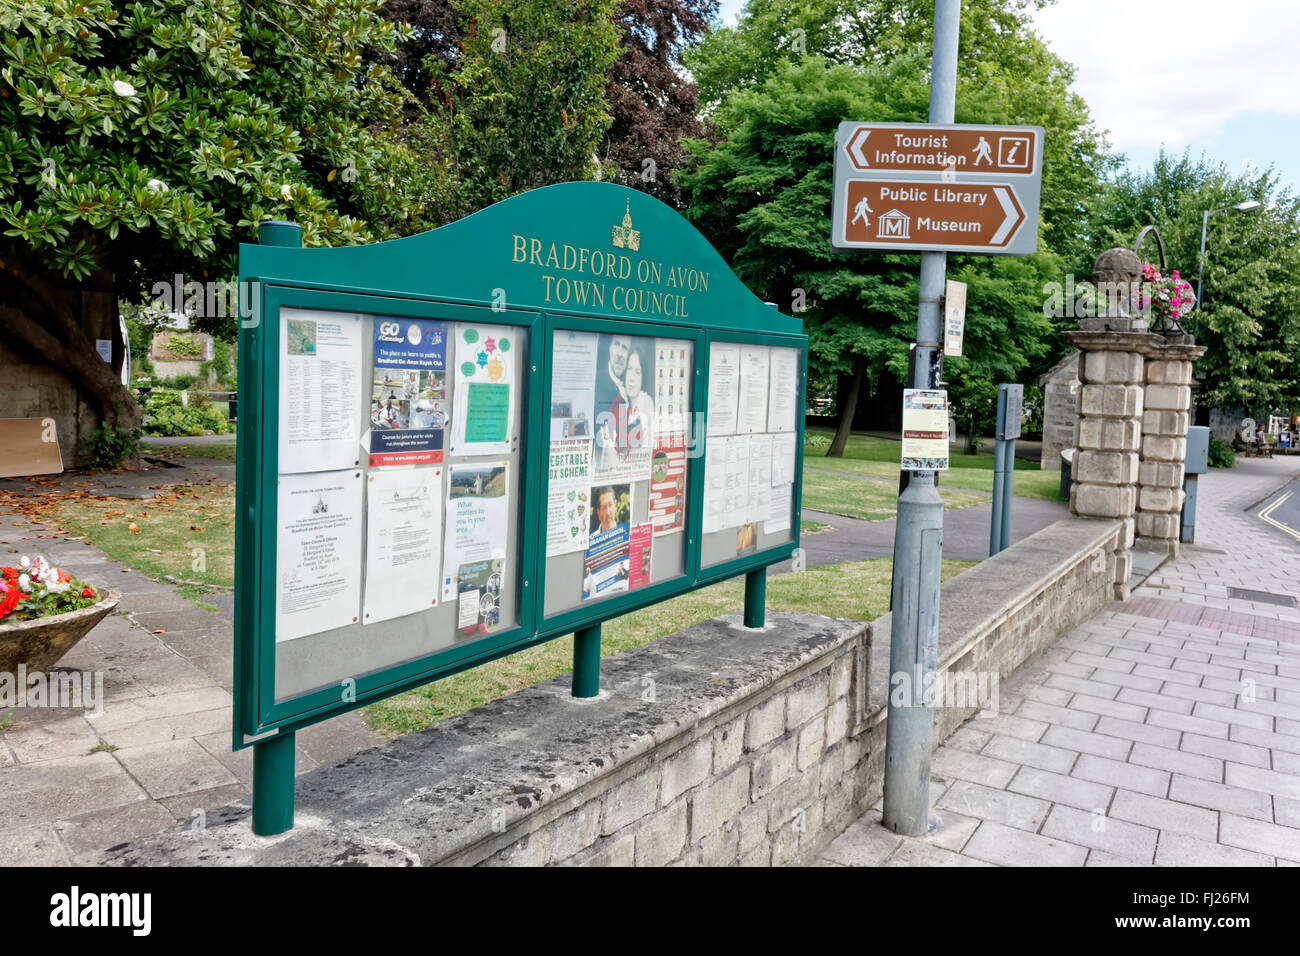 Bradford on Avon Town Council Information board, Wiltshire, United Kingdom. - Stock Image